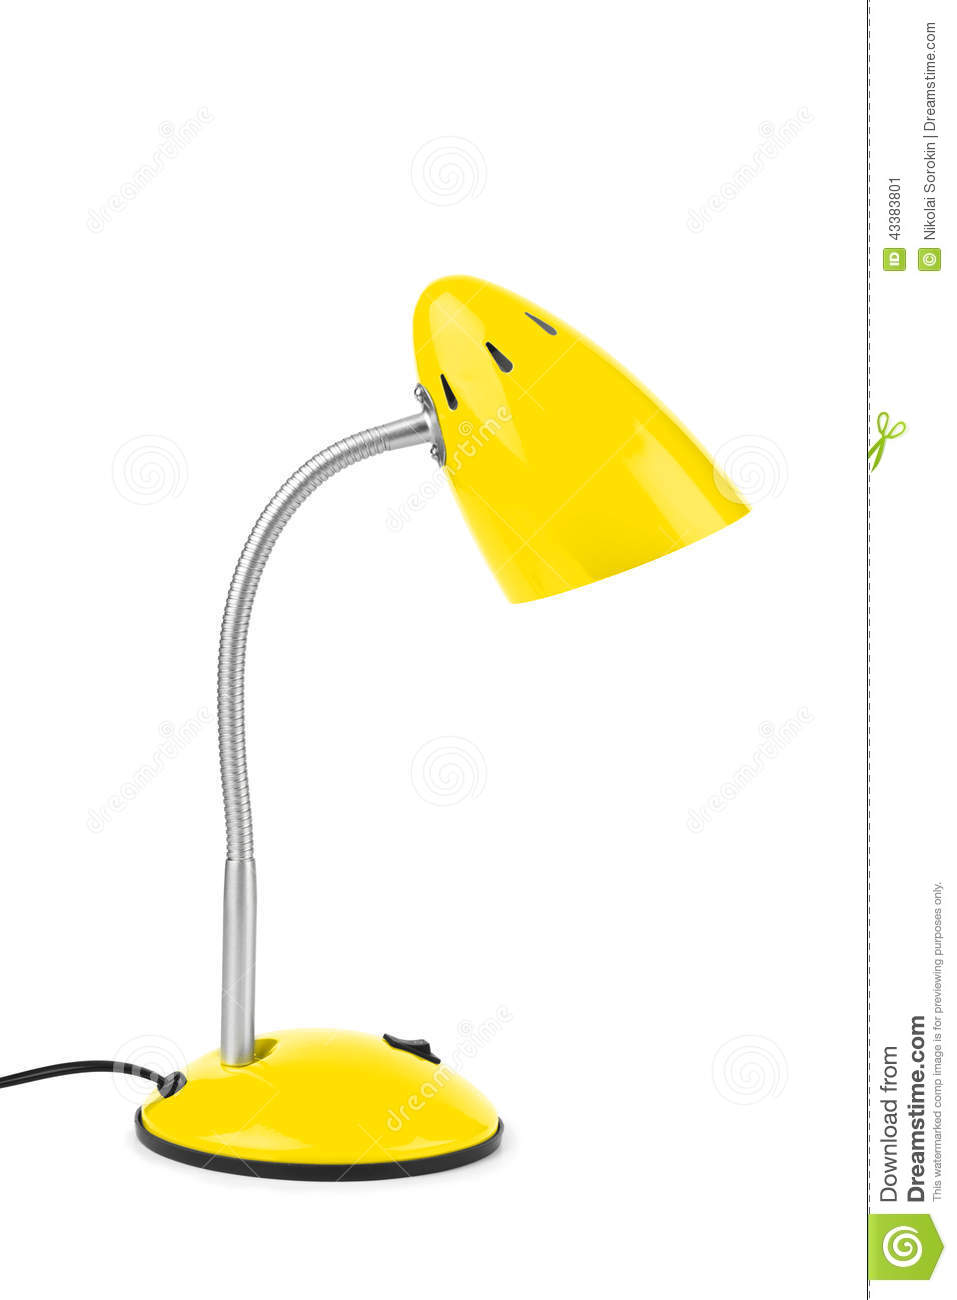 Lampe de bureau jaune photo stock image 43383801 for Lampe de bureau jaune